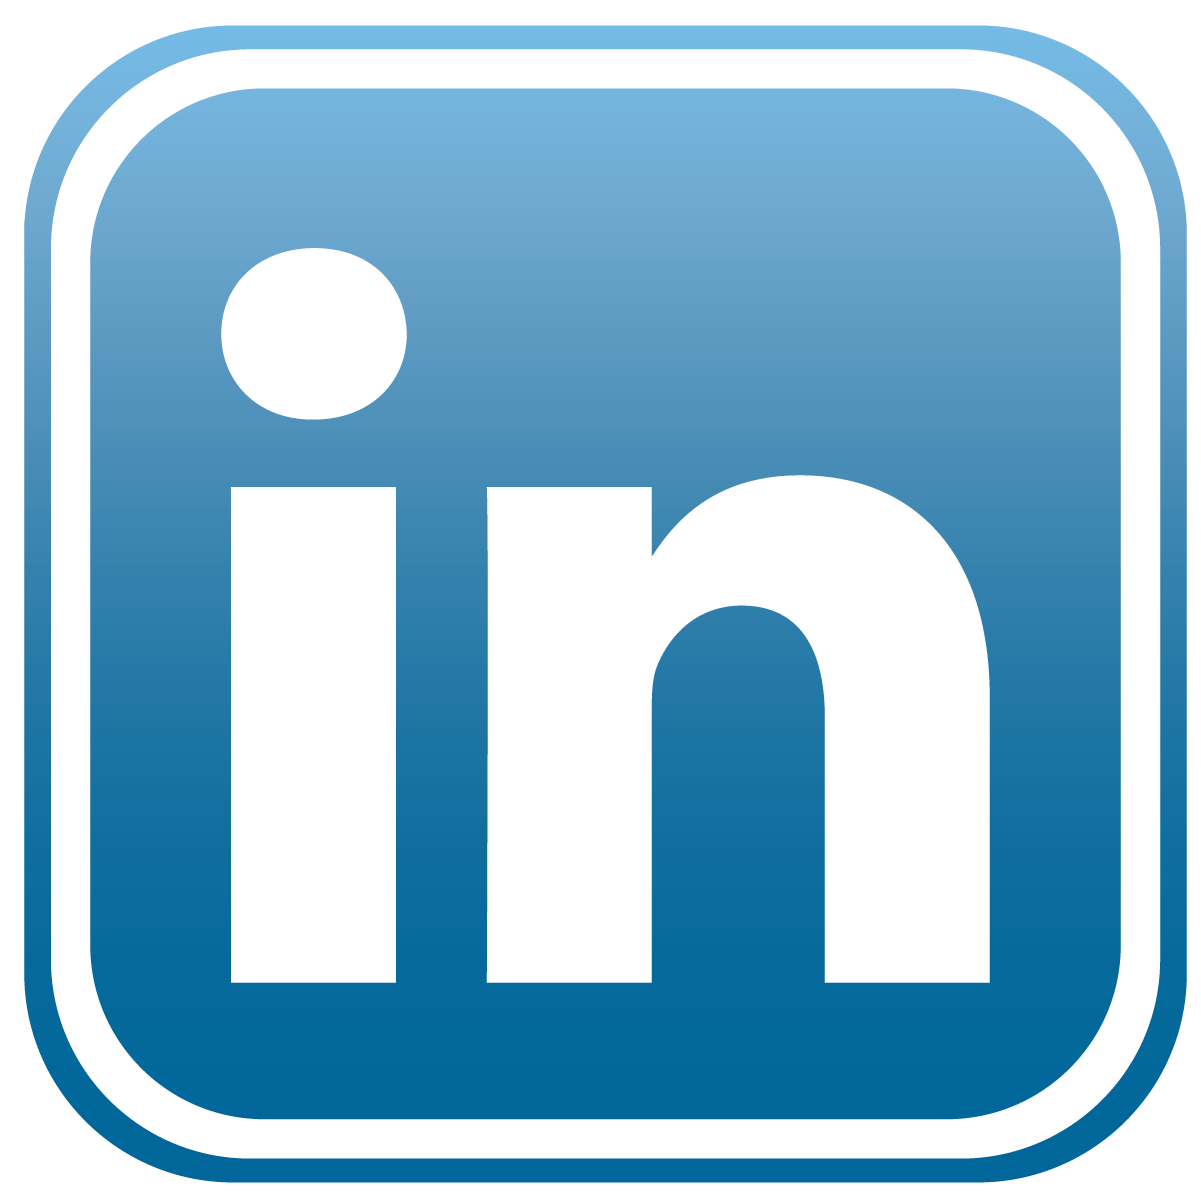 linkedin-icon.png